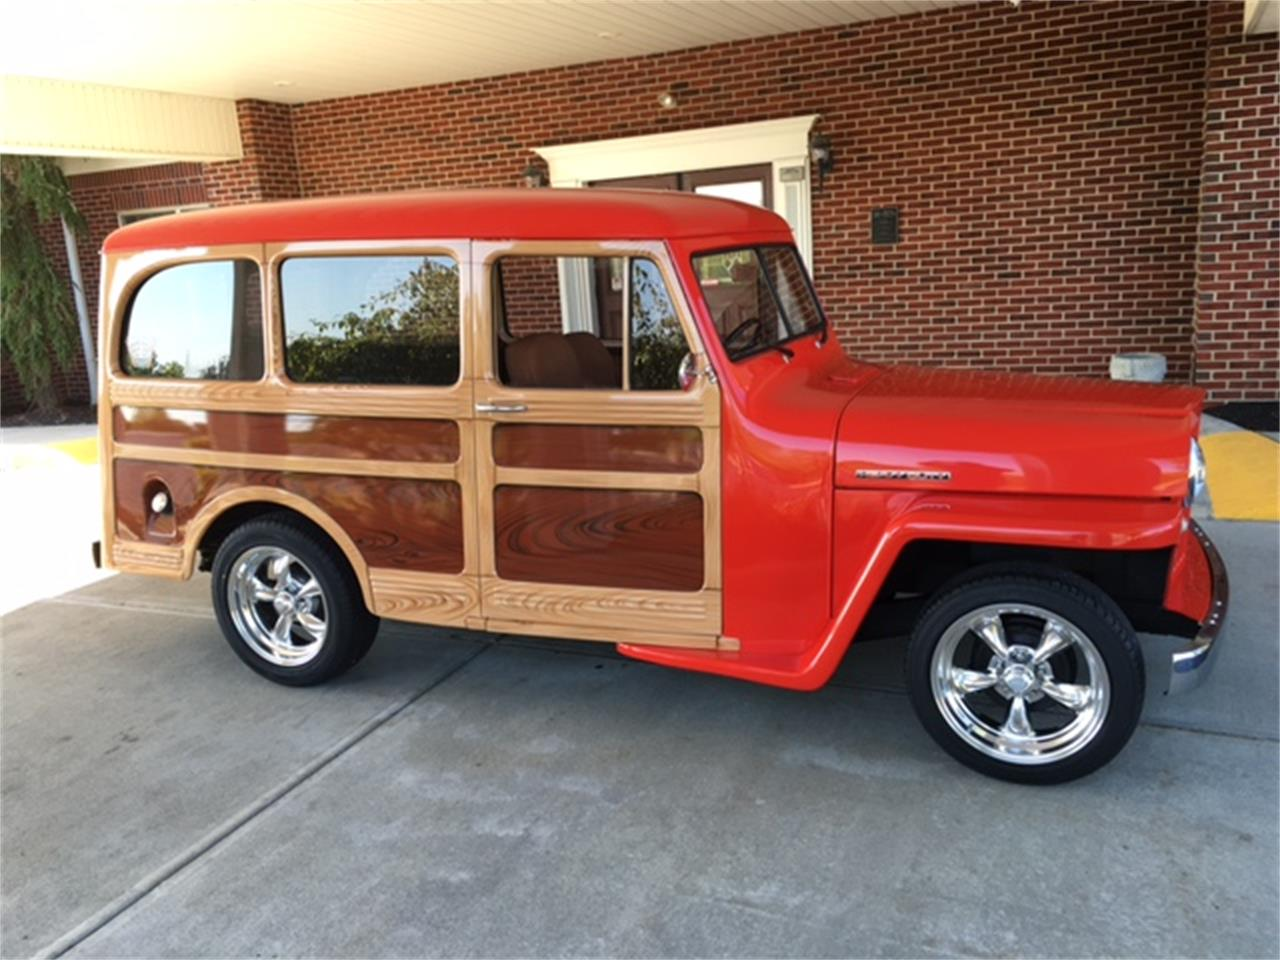 For Sale: 1947 Willys-Overland Jeep Station Wagon in Fairfield, Ohio